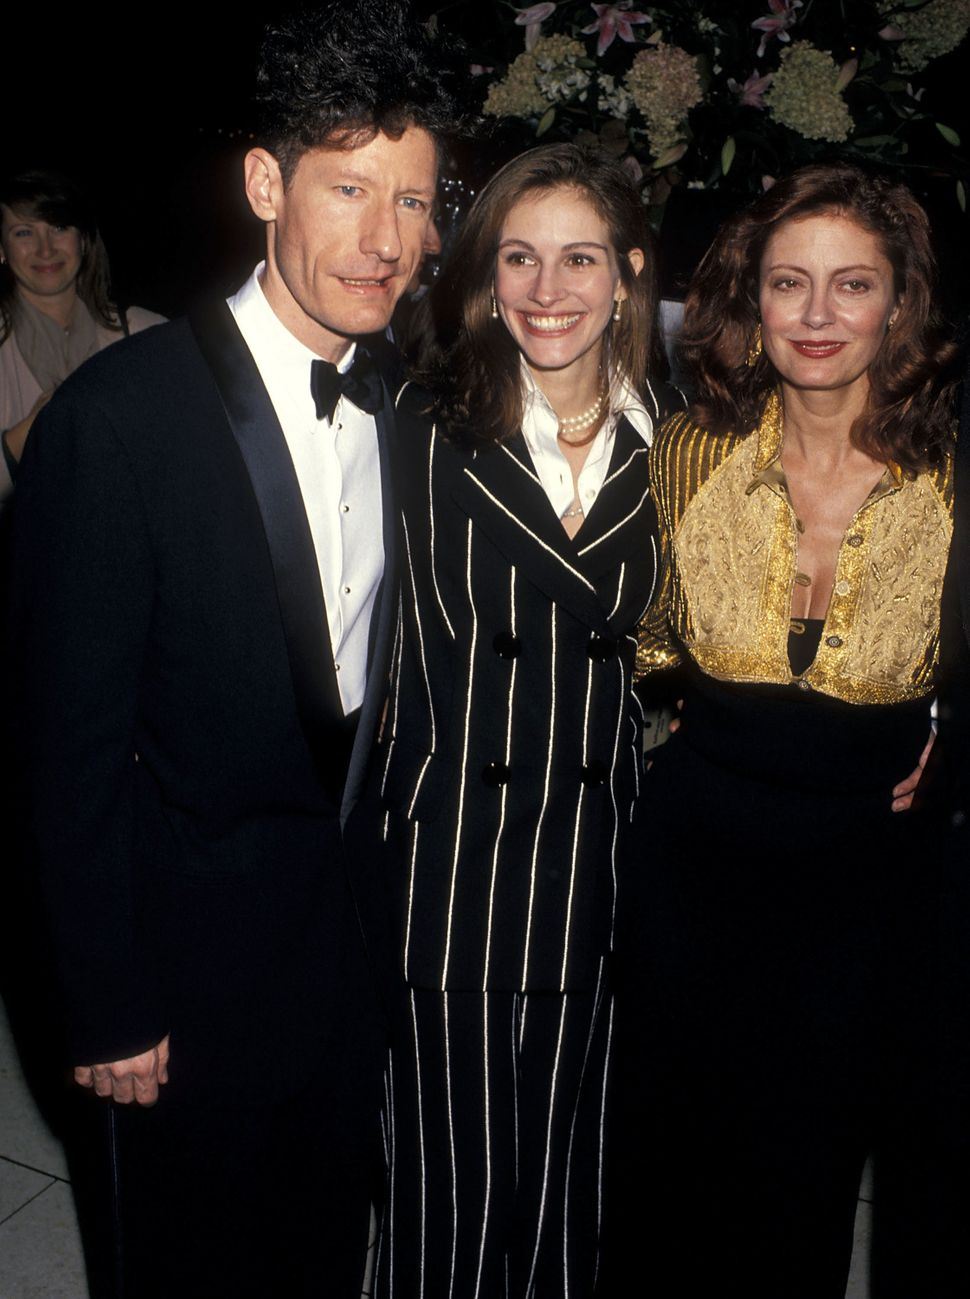 Singer Lyle Lovett, actress Julia Roberts and actress Susan Sarandon attend the 31st Annual New York Film Festival Opening Ni